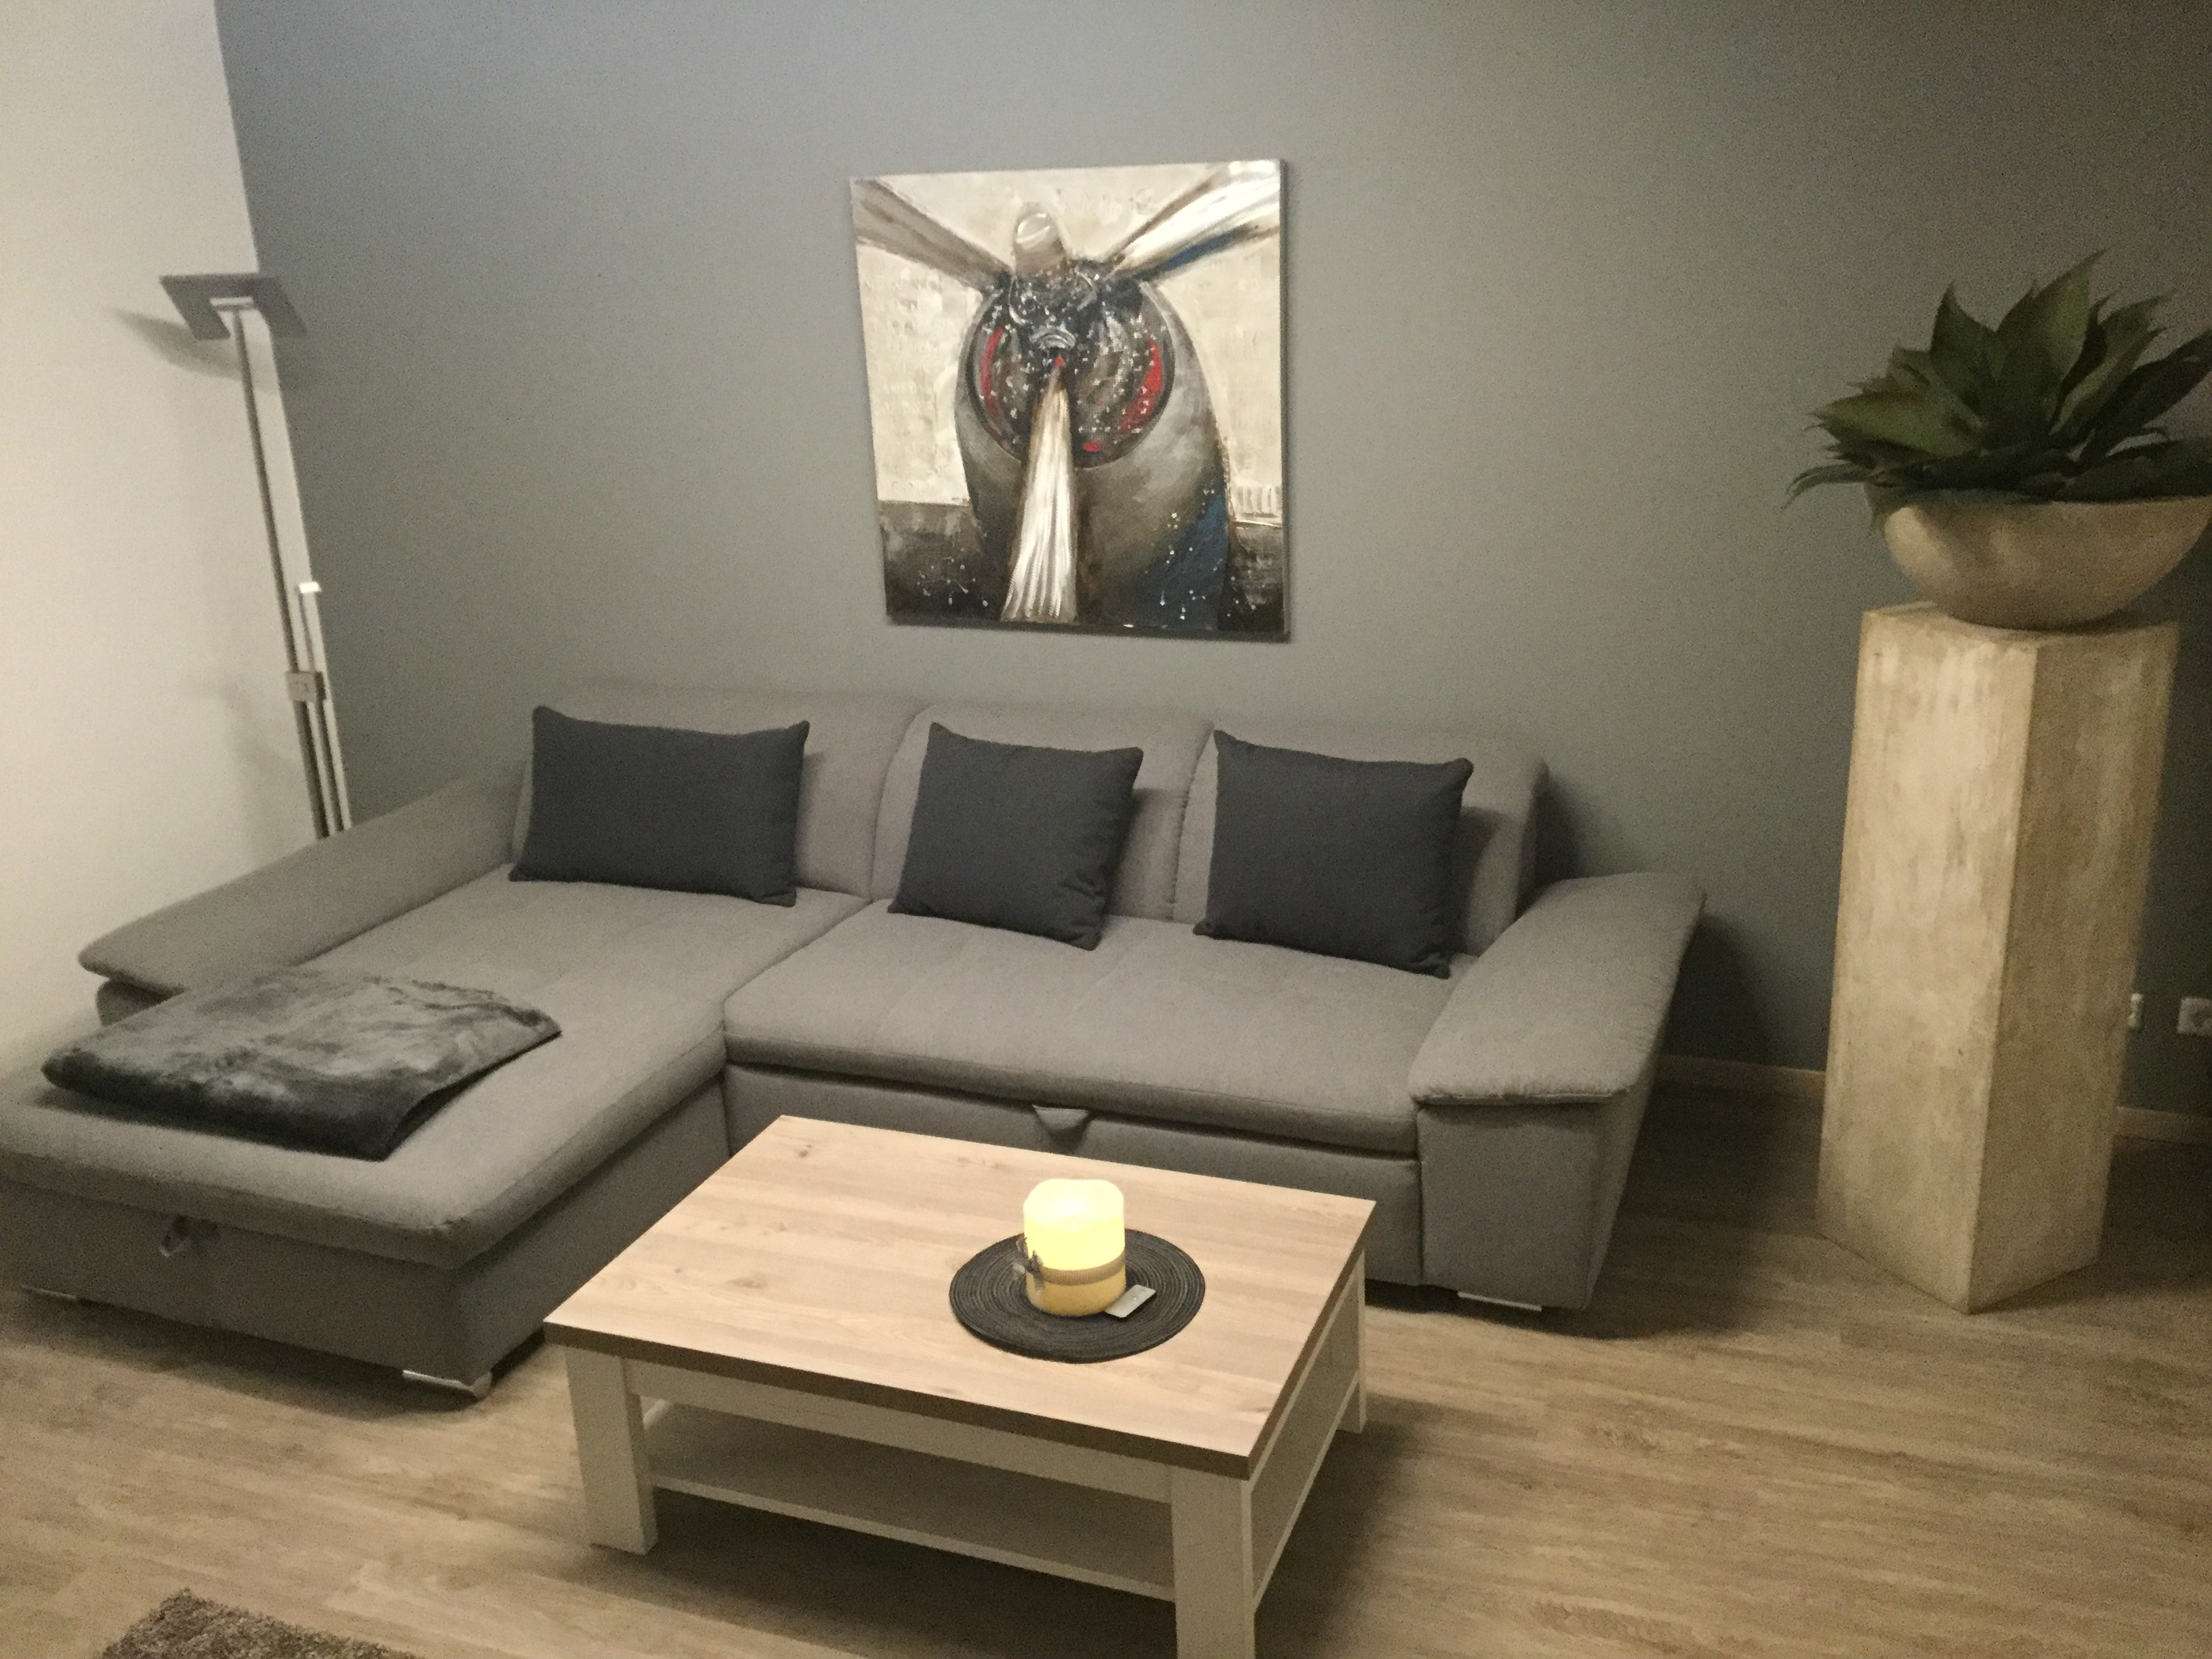 Komfortable graue Couch